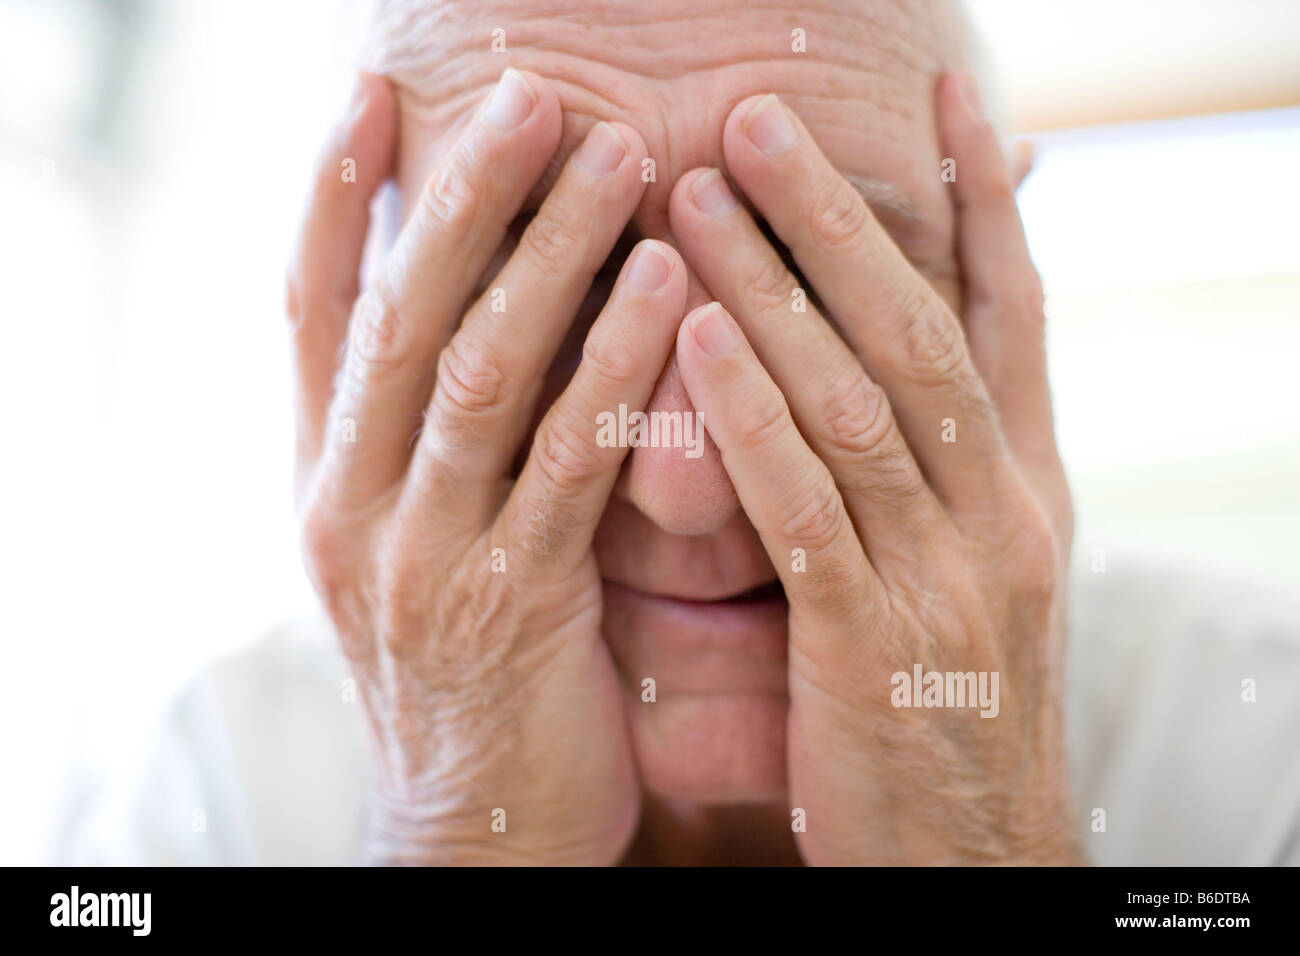 Depression. Unhappy man covering his face with his hands. - Stock Image